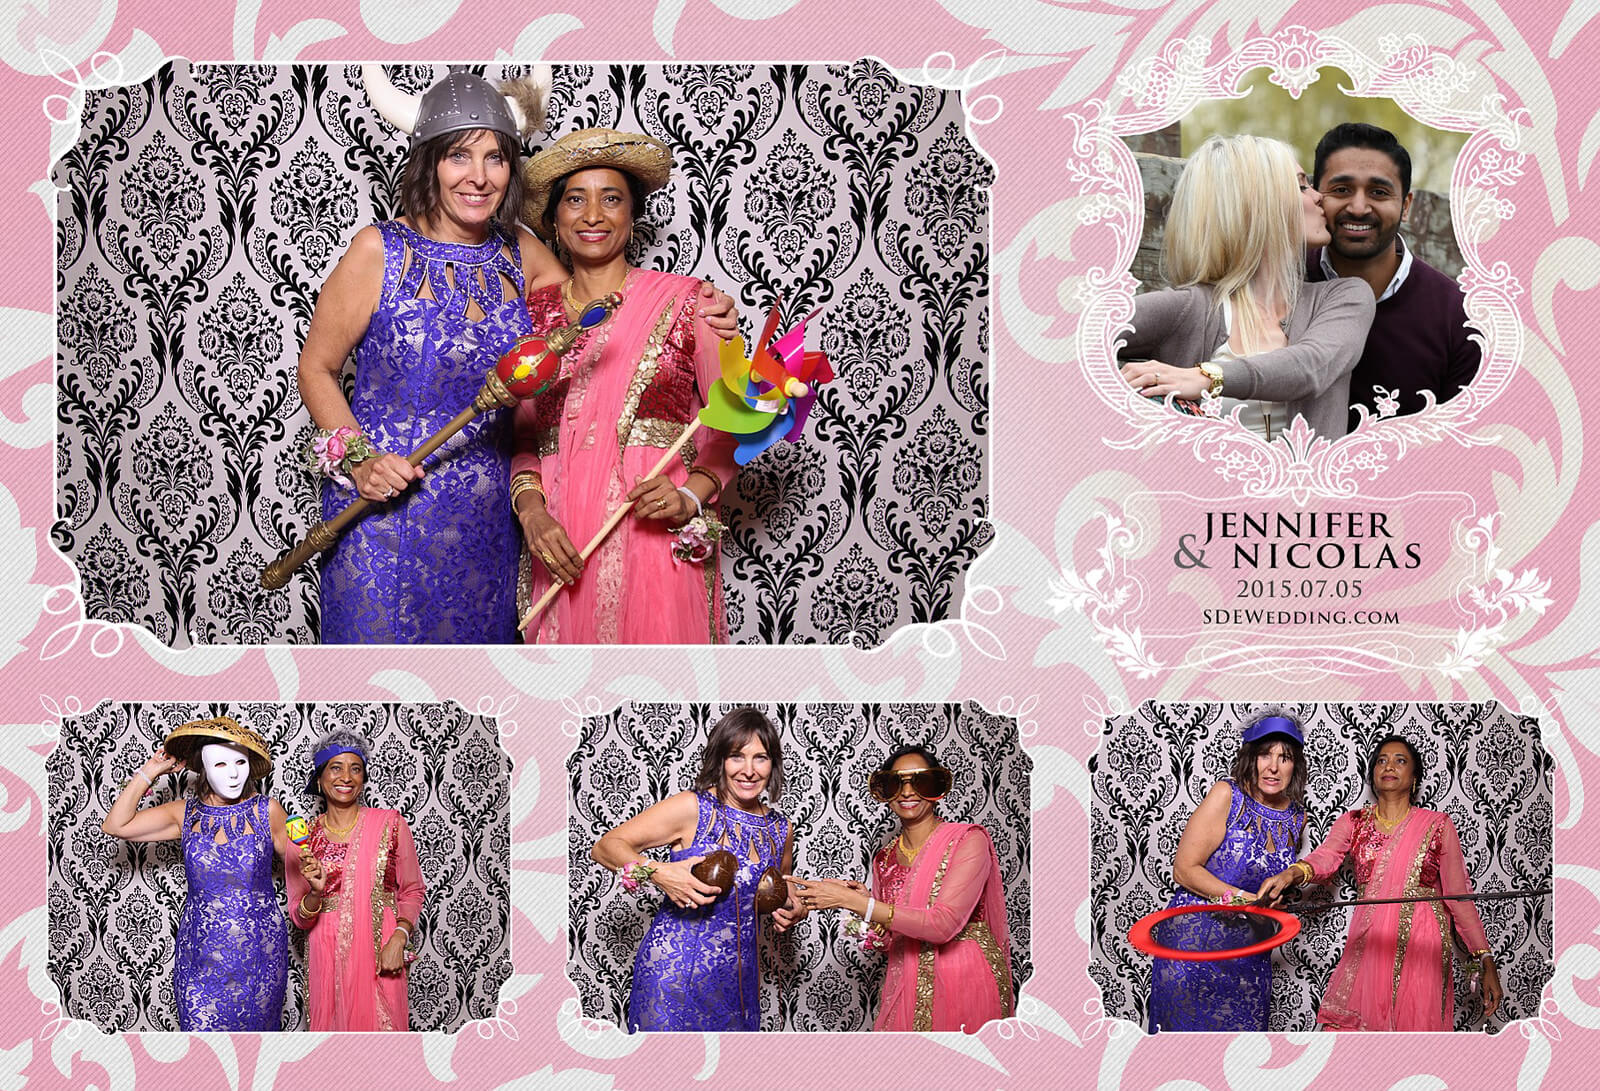 Toronto Liberty Grand Wedding Reception Photo Booth Rental 3